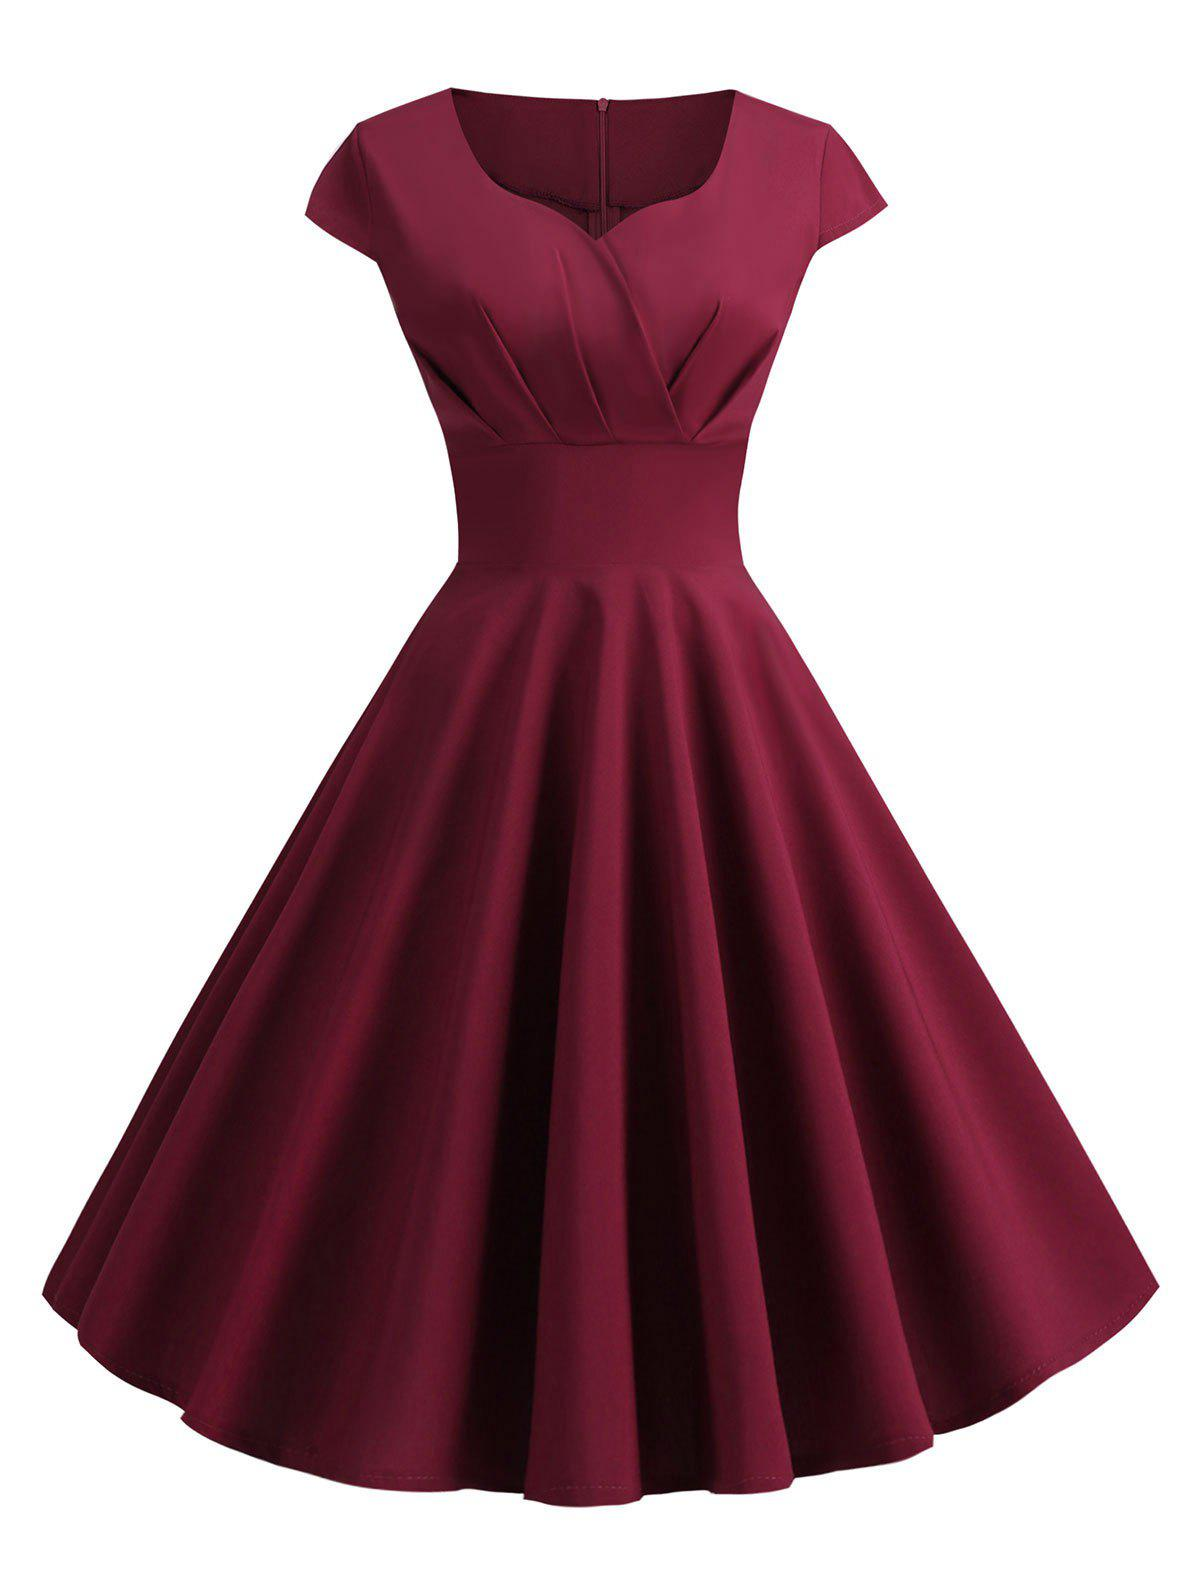 Sweetheart Neck Vintage Rockabilly Style Fit and Flare Dress - RED WINE 2XL